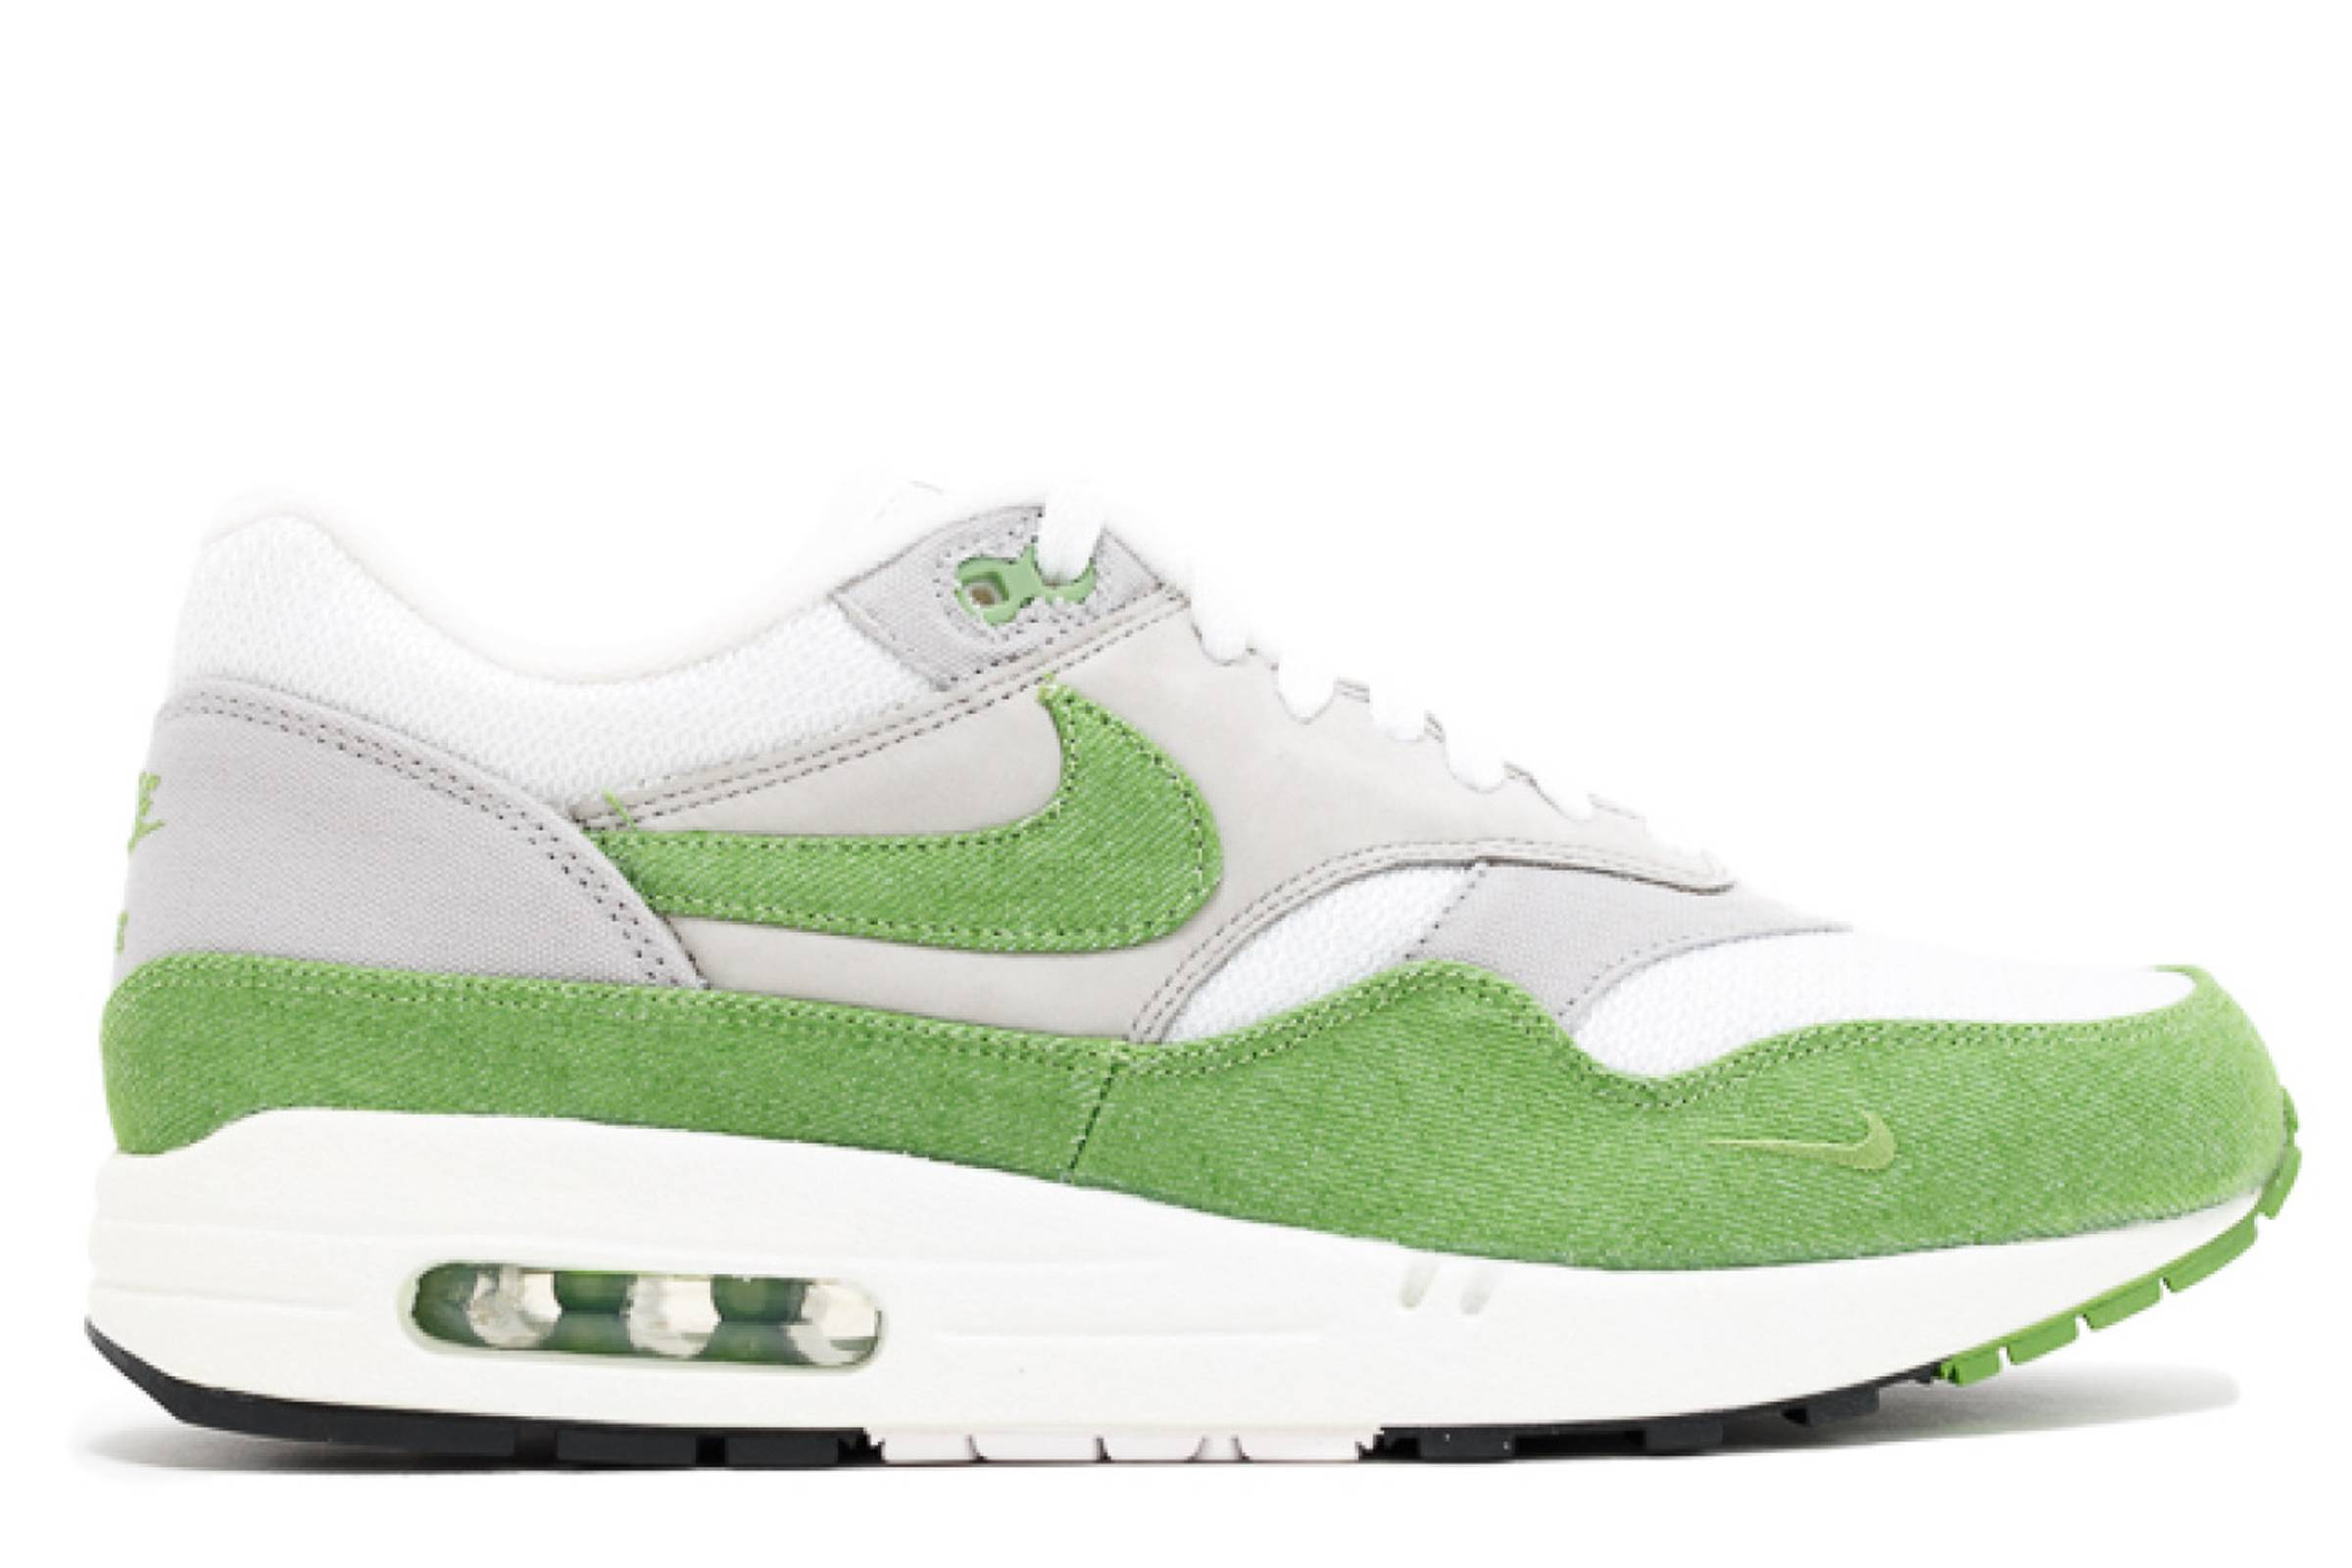 d1c2c7d5d6ef76 The Birth of Air  A History of the Air Max 1 - Air Max 1 History ...